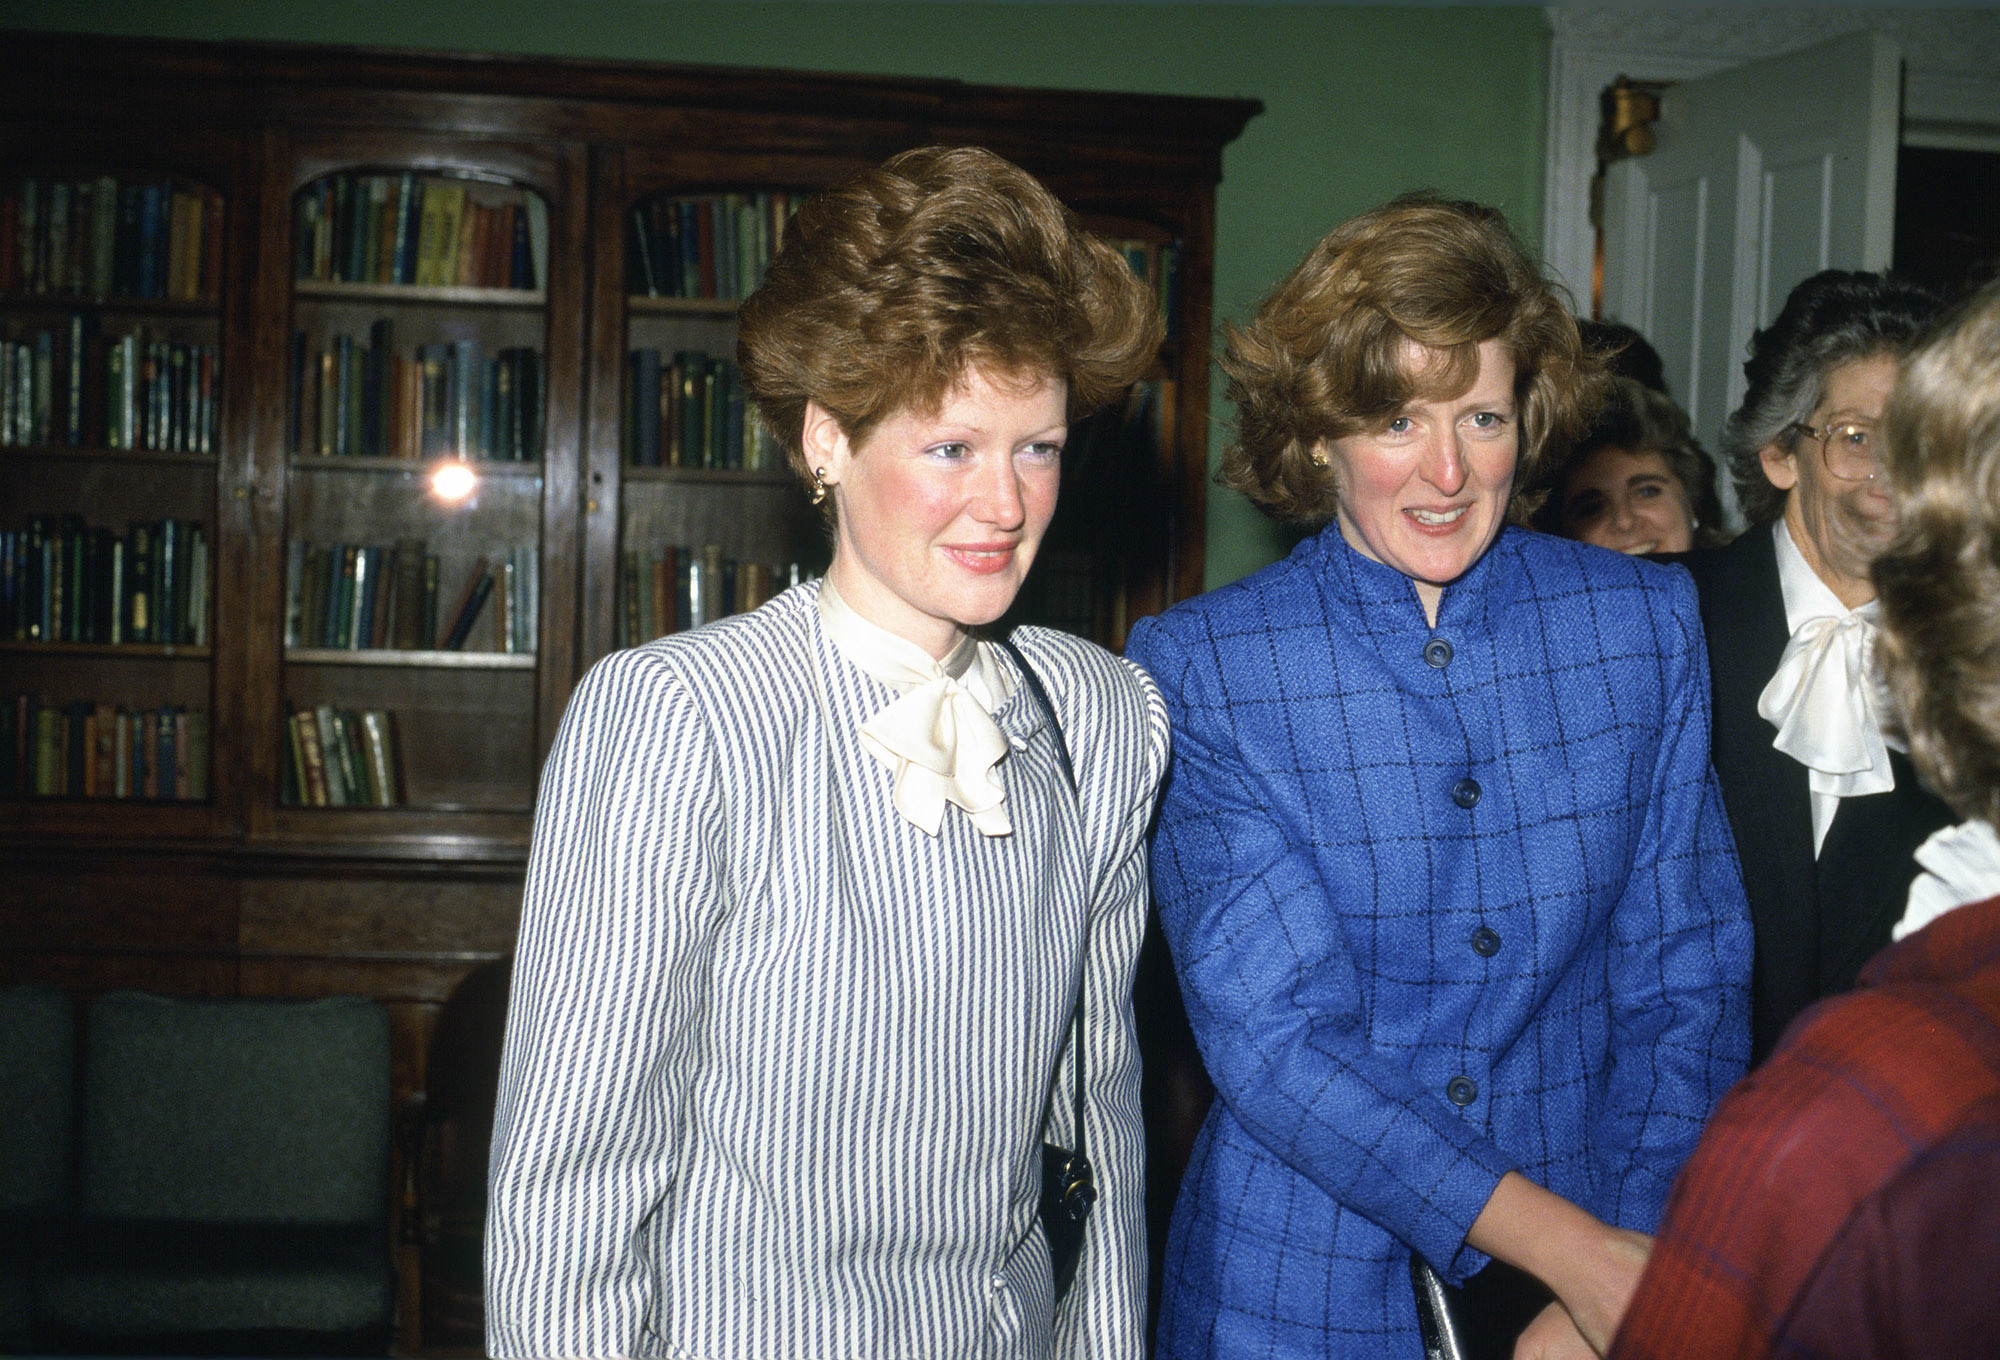 GREAT BRITAIN - NOVEMBER 12:  Lady Jane Fellows and Lady Sarah McCorquodale, Princess Diana's sisters, meeting the headmistress of West Heath School that they used to attend  (Photo by Tim Graham/Getty Images)